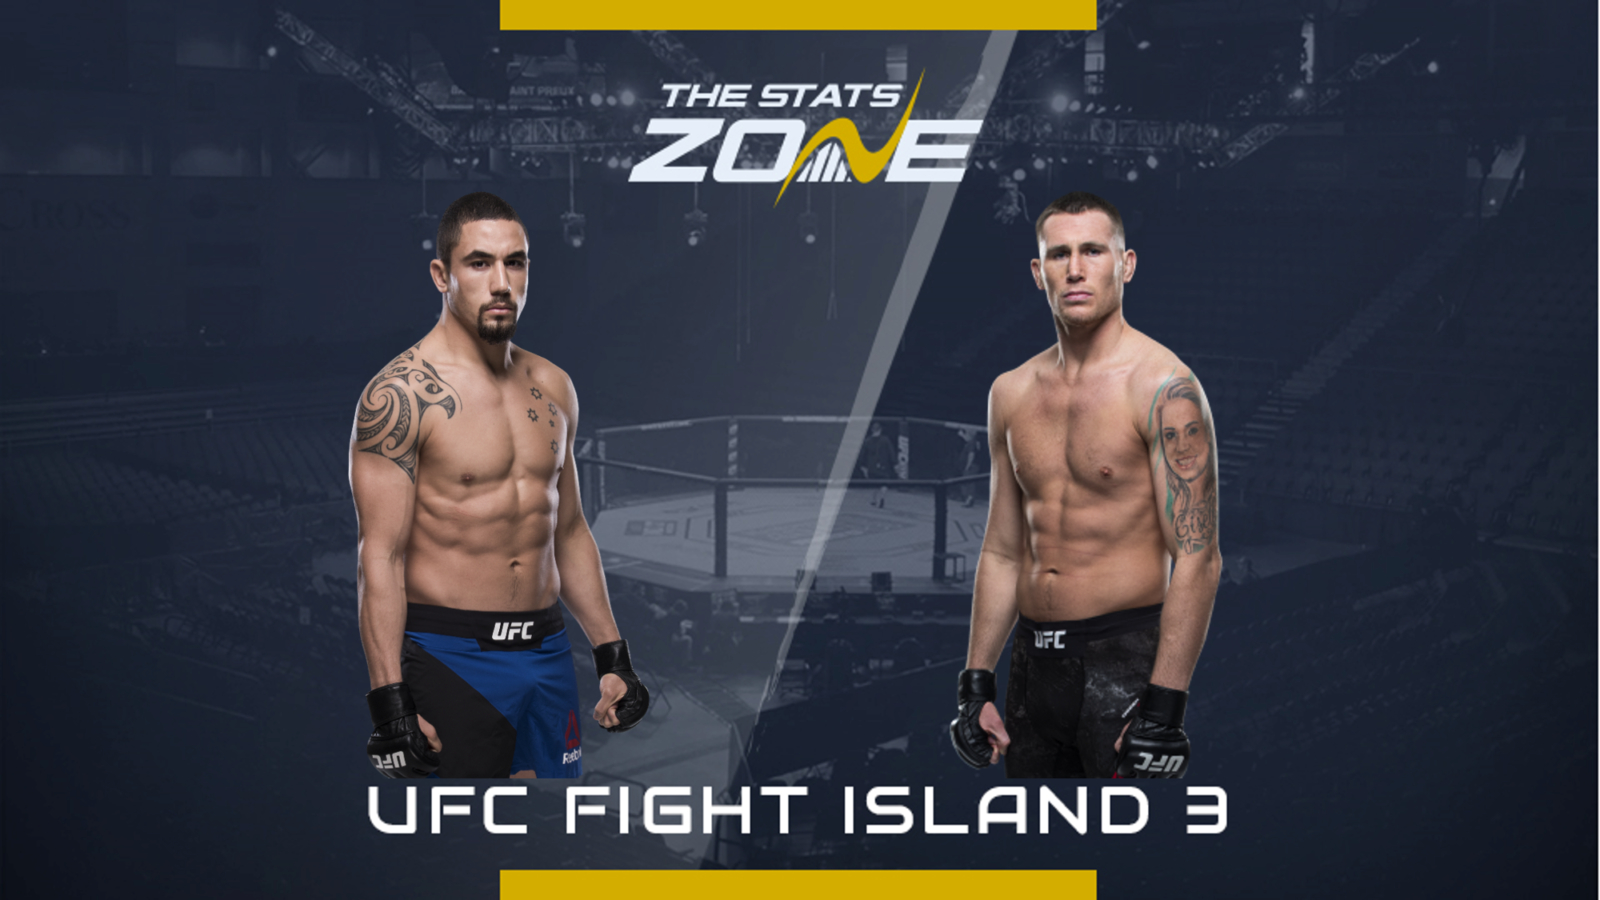 Mma Preview Robert Whittaker Vs Darren Till At Ufc Fight Island 3 The Stats Zone